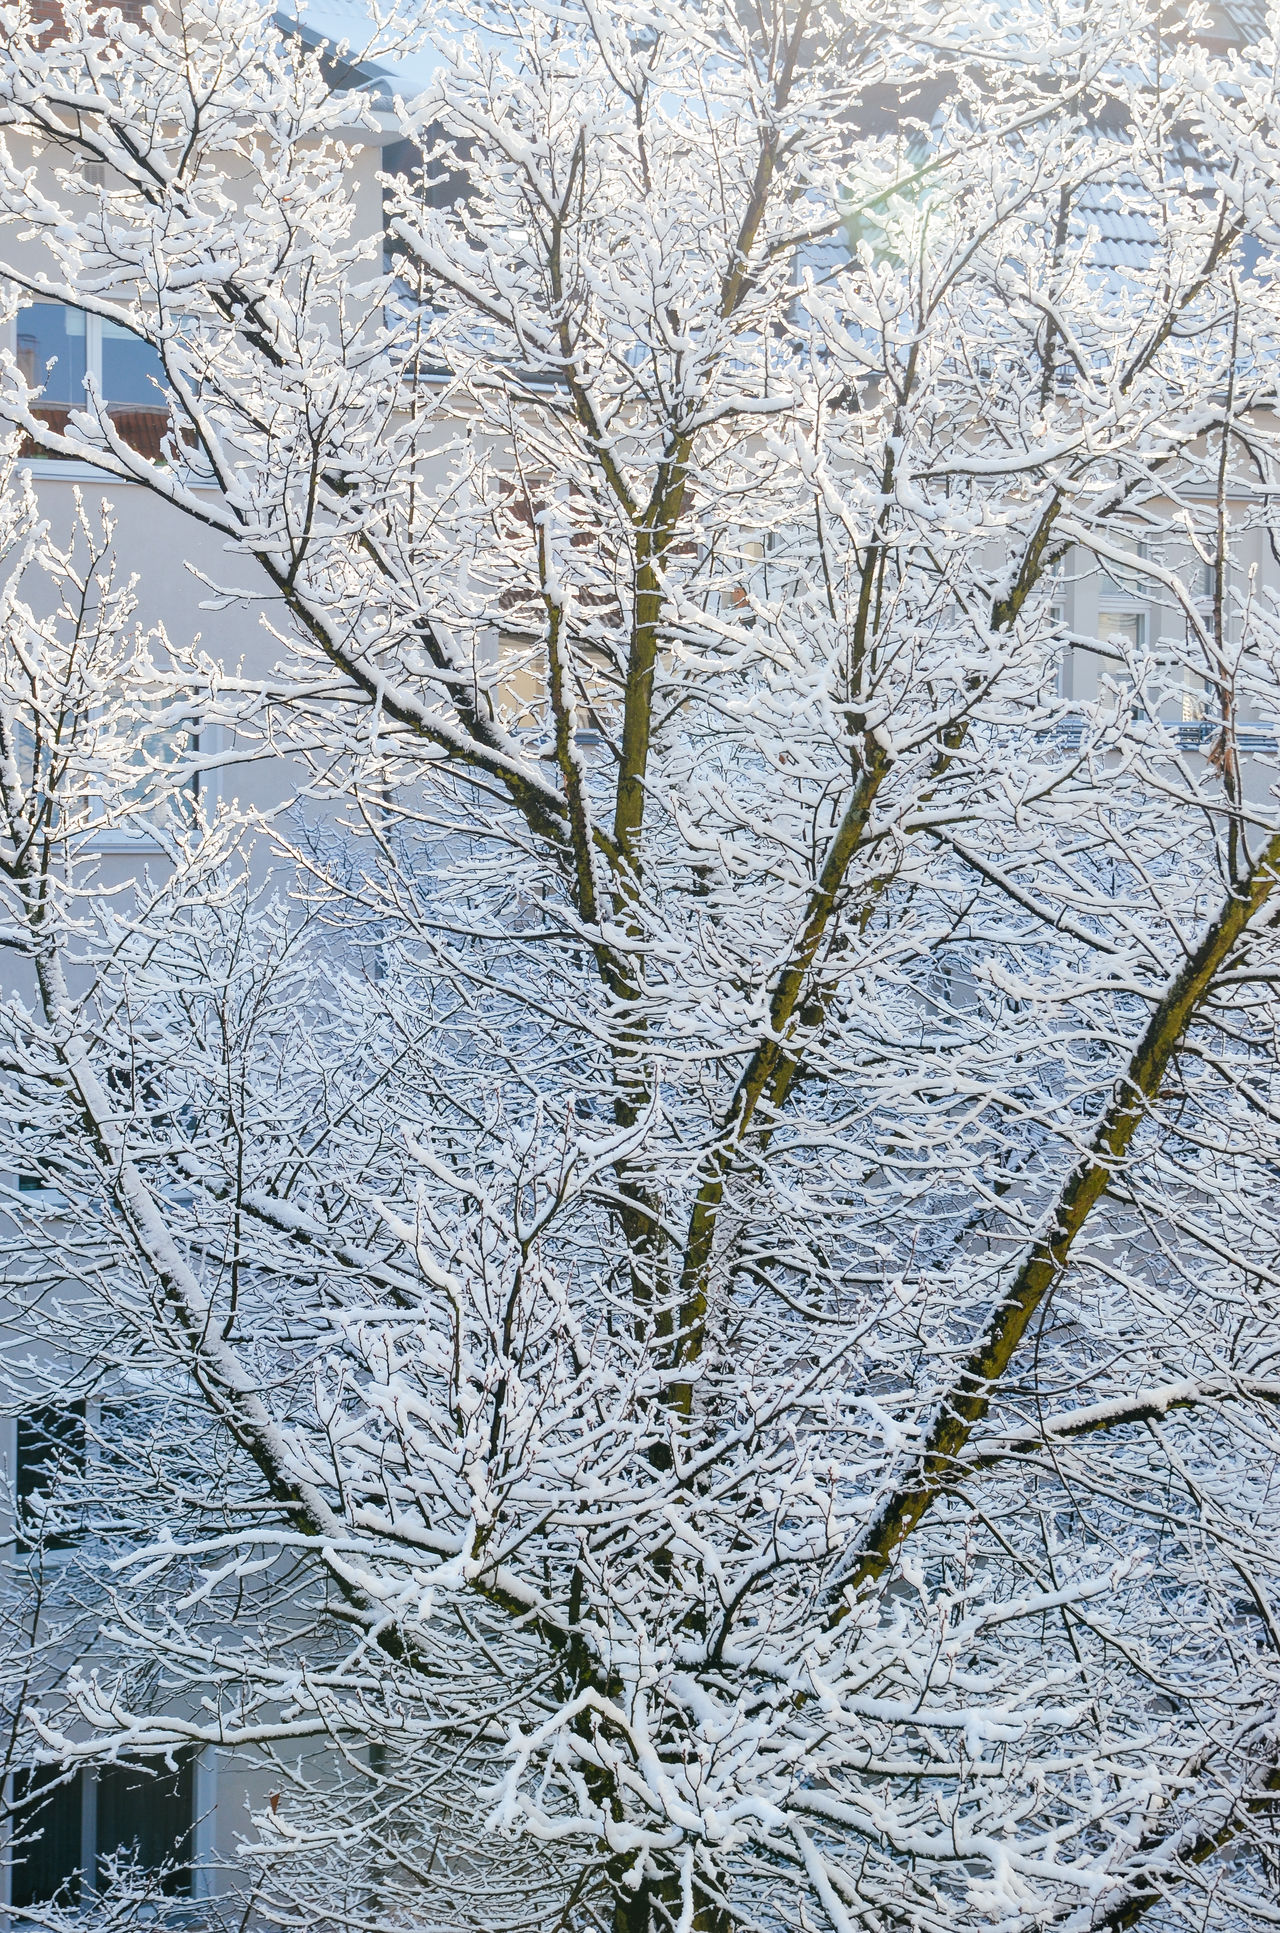 Backgrounds Beauty In Nature Berlin Branch Close-up Day Full Frame Growth Low Angle View Nature Nature No People Outdoors Sky Snow Tree Trees Winter Winter Wonderland Wintertime